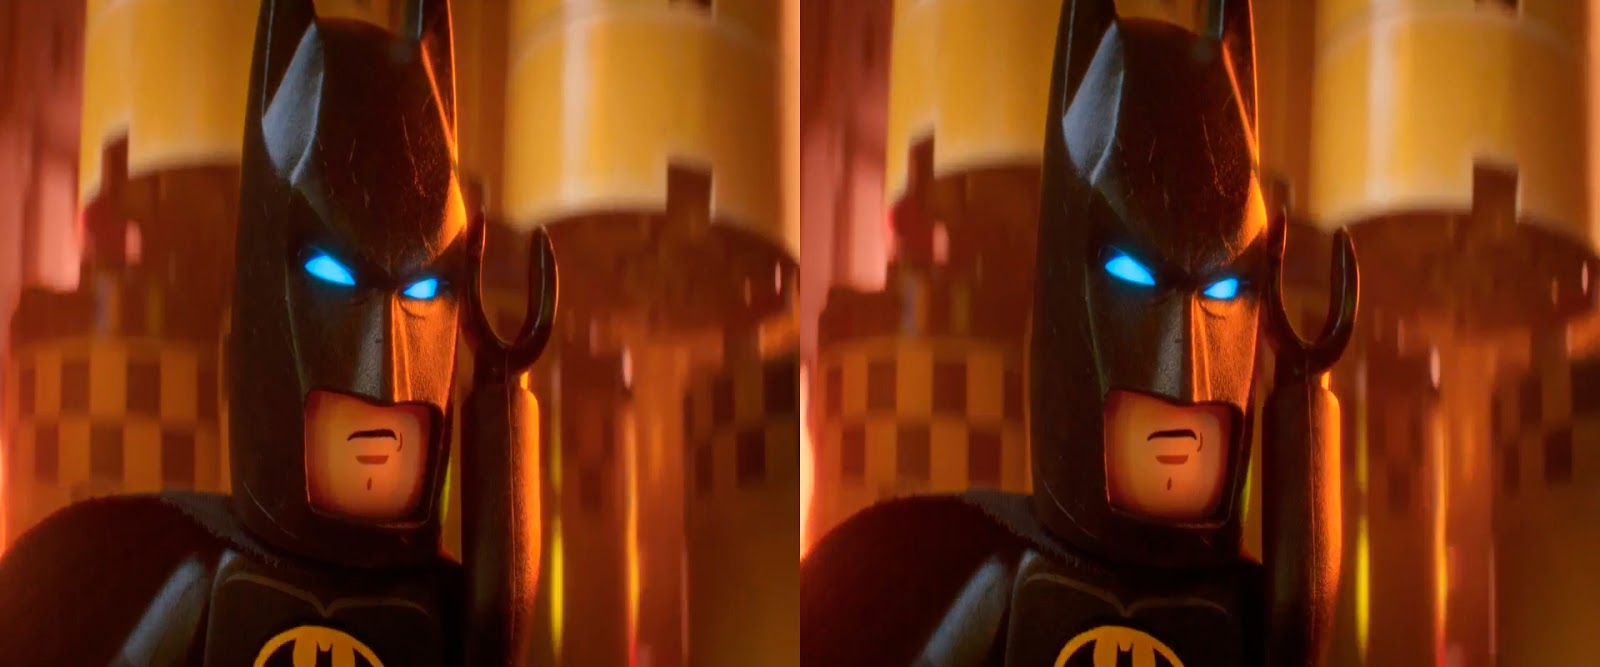 Batman Lego Película 3D HD 1080p Latino captura 1